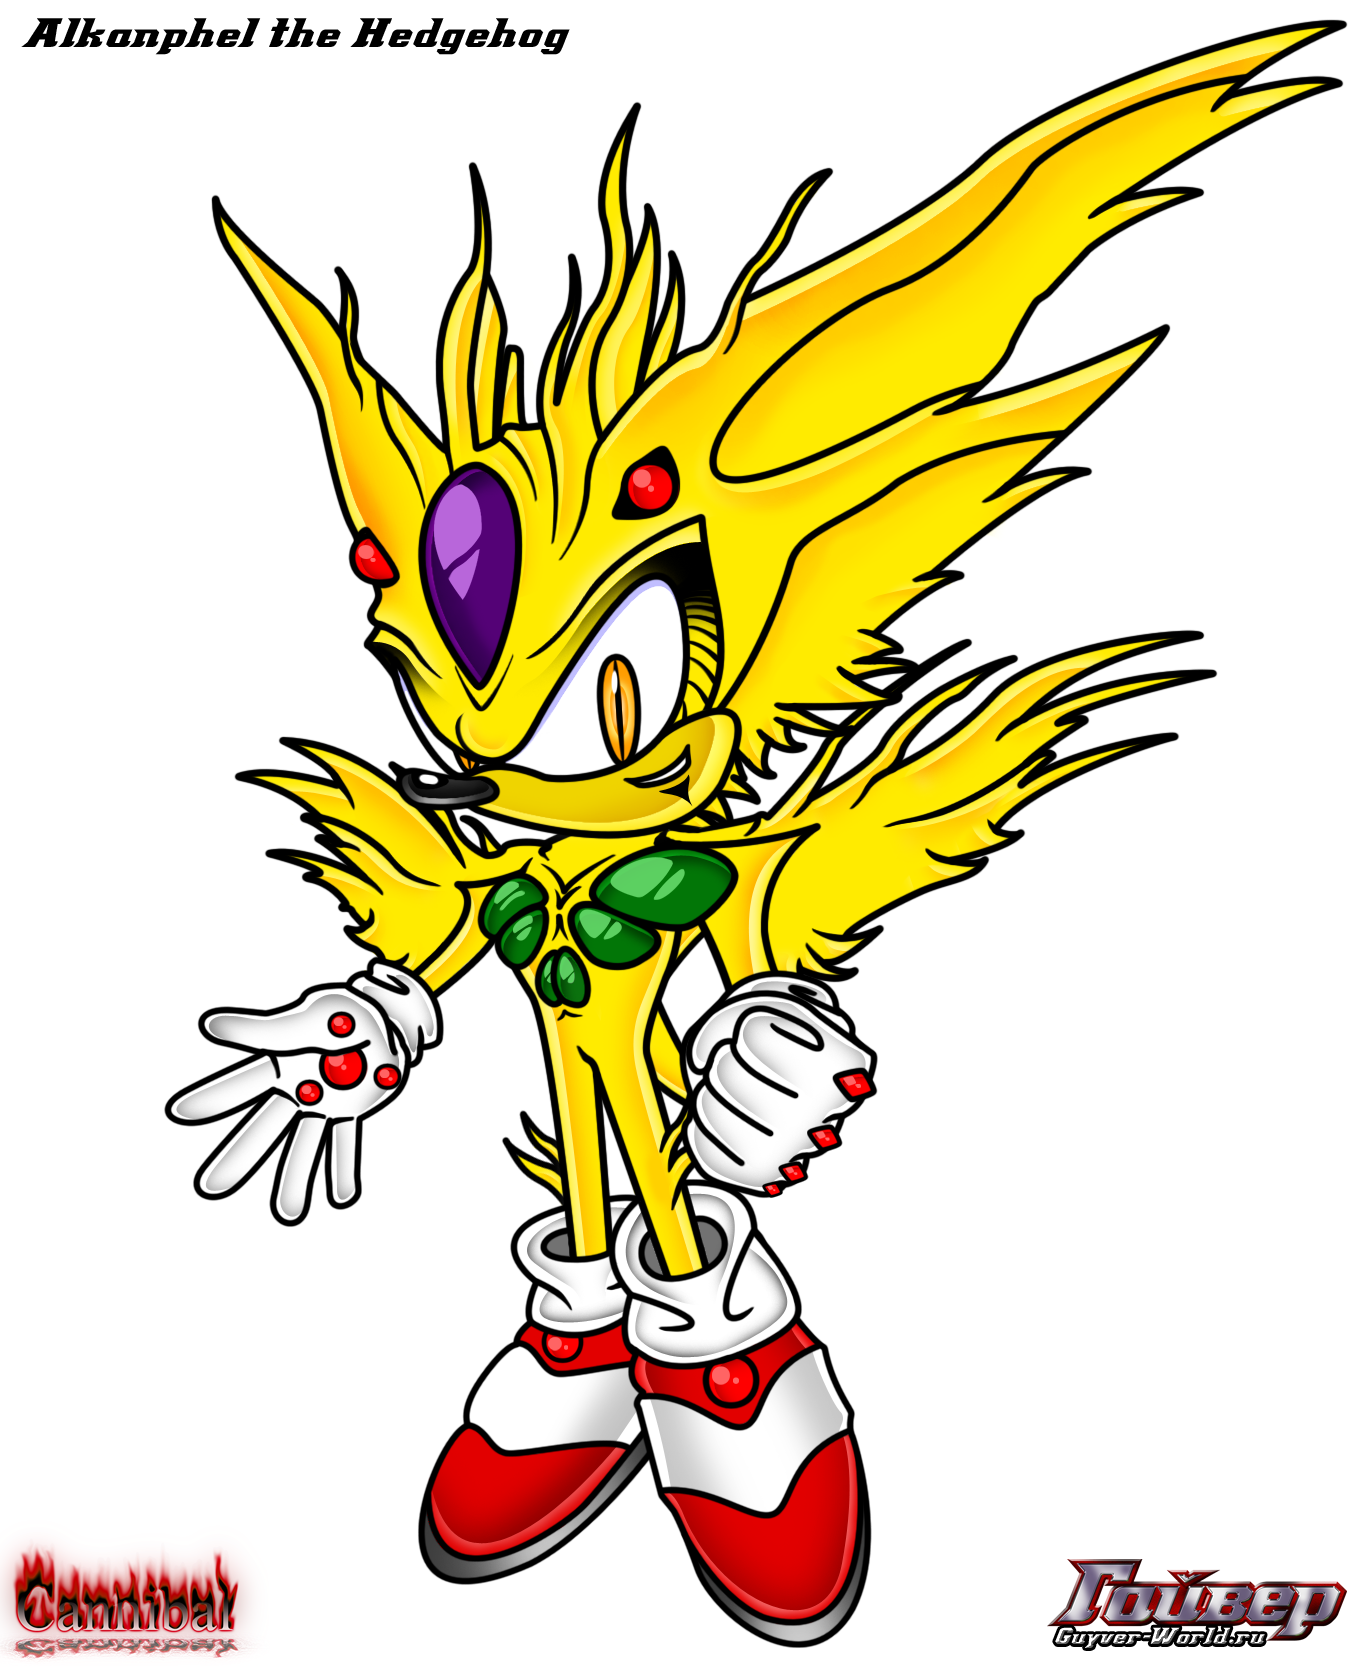 zoalord alkanphel the hedgehog by cannibalhypertails on